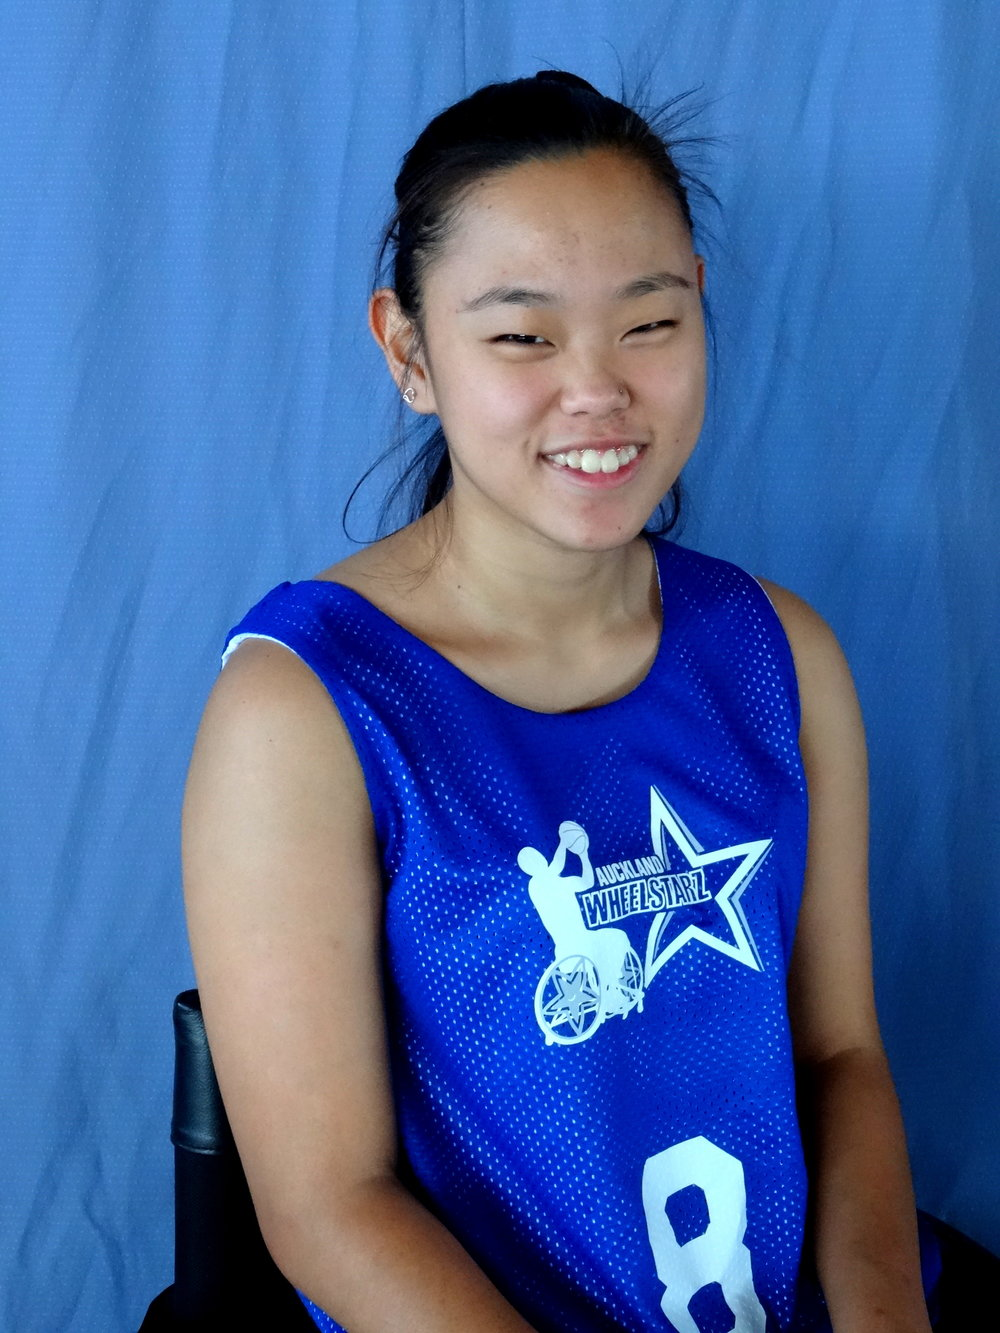 Grace Lee - I am 21 years old and I have Cerebral Palsy.  I have been playing wheelchair basketball for 3 years. I really enjoy wheelchair basketball as it gives me purpose and motivation to keep pushing hard to get better and better each time I train.It is great being a part of the Auckland WheelStarz. In early 2017 I got the opportunity to travel to Australia and attend the Women's Festival of Wheelchair Basketball held in Sydney. It was an amazing experience to play alongside Paralympians and learn valuable skills to bring back to New Zealand.